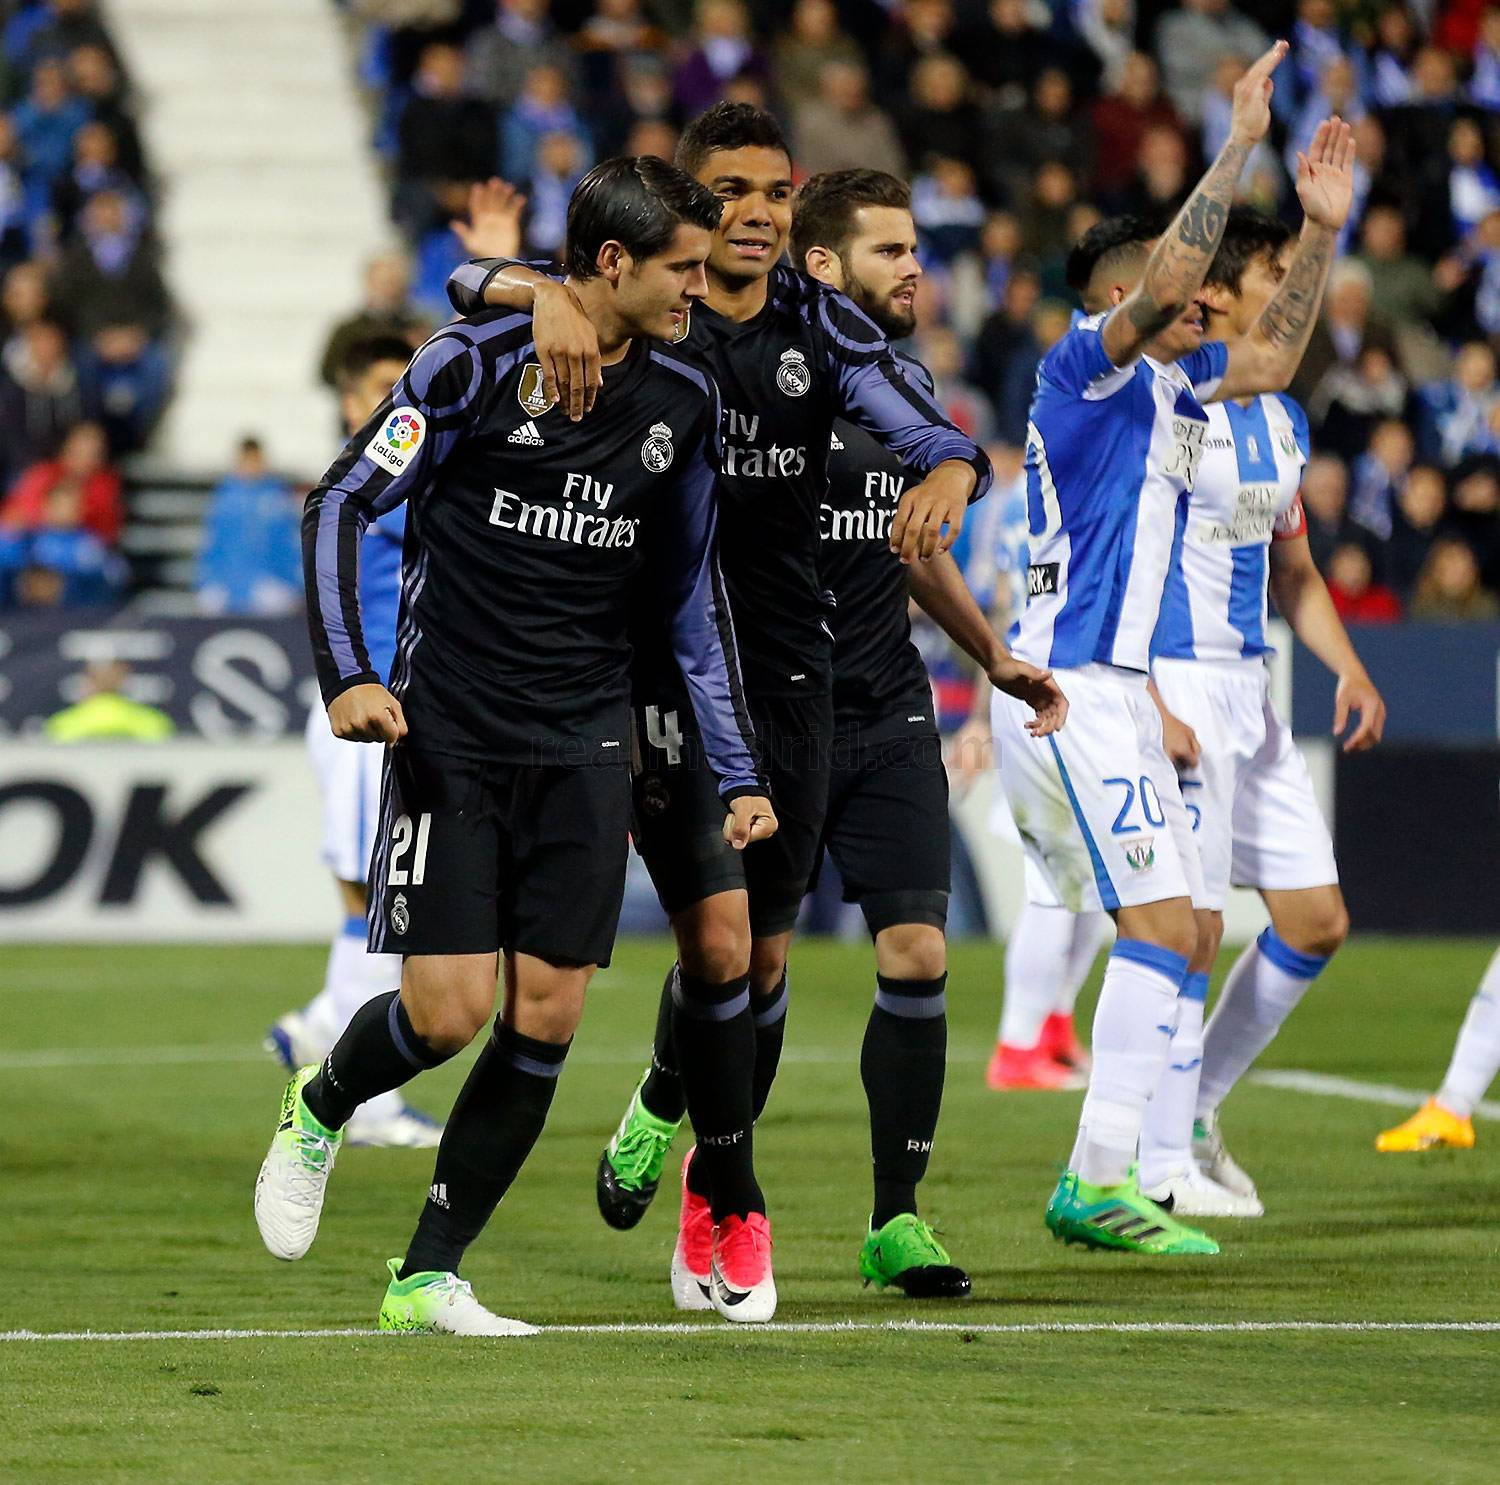 Real Madrid - Leganés - Real Madrid - 05-04-2017